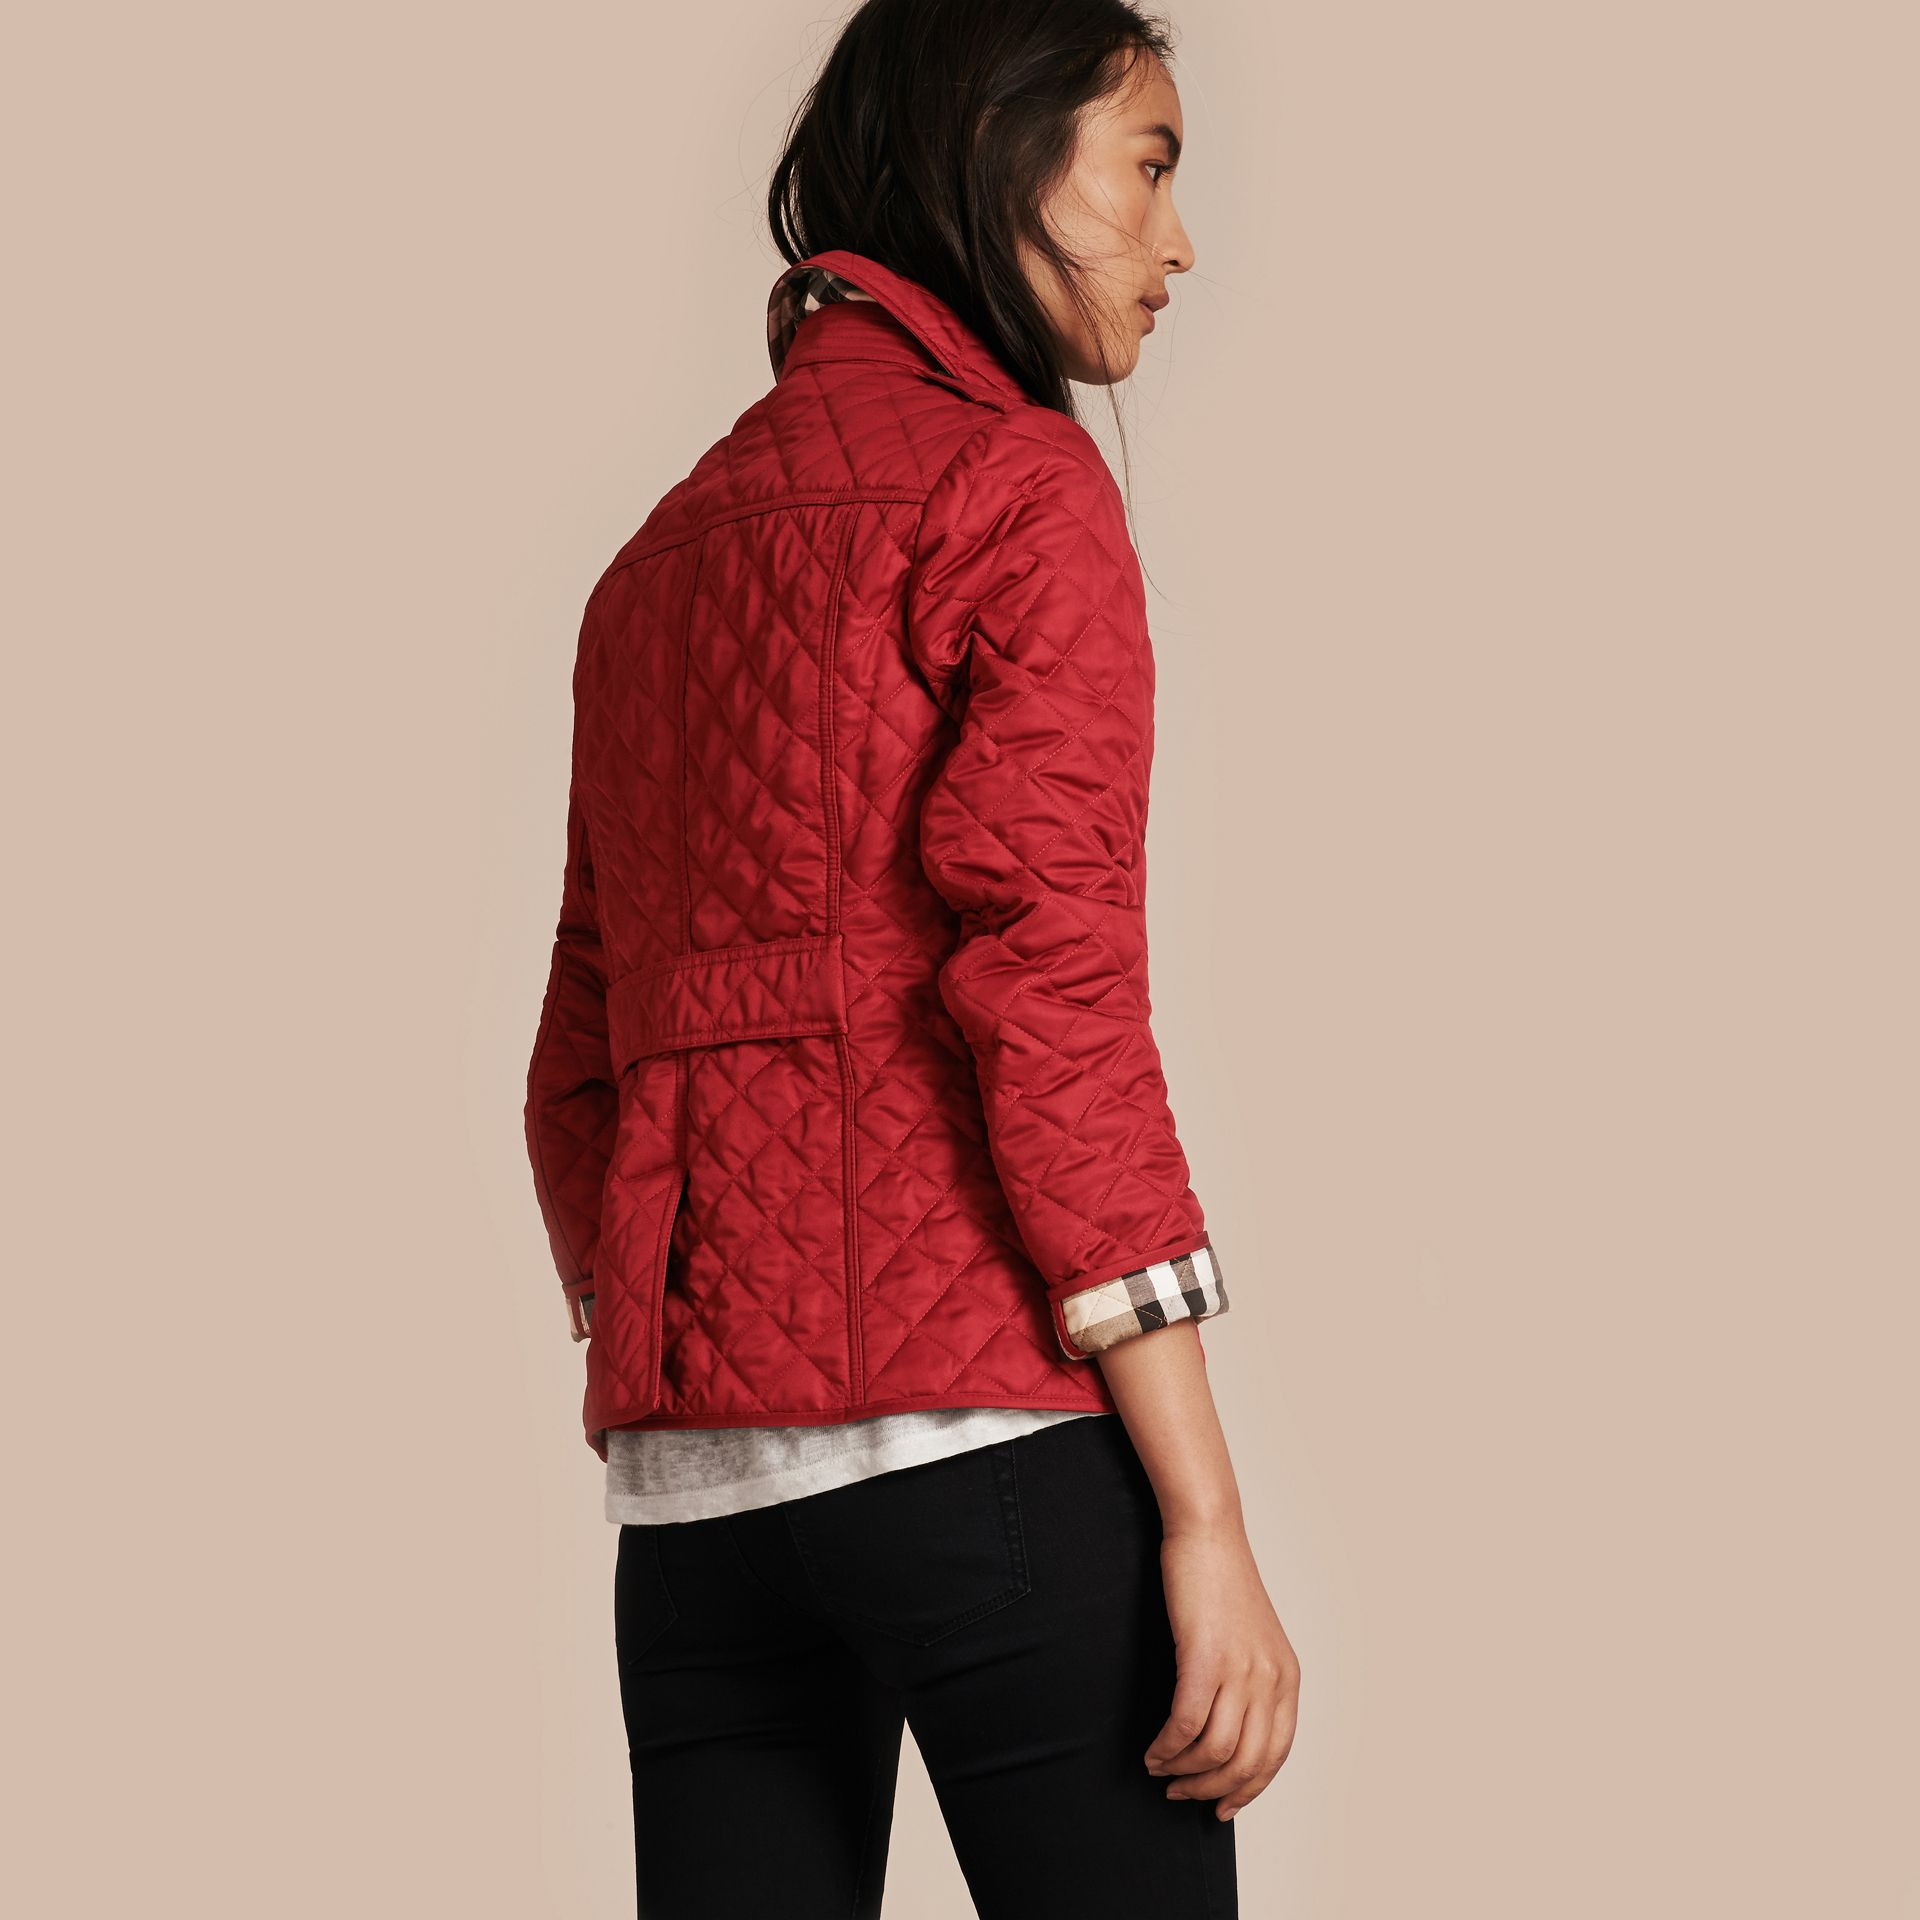 Parade red Diamond Quilted Jacket Parade Red - gallery image 3